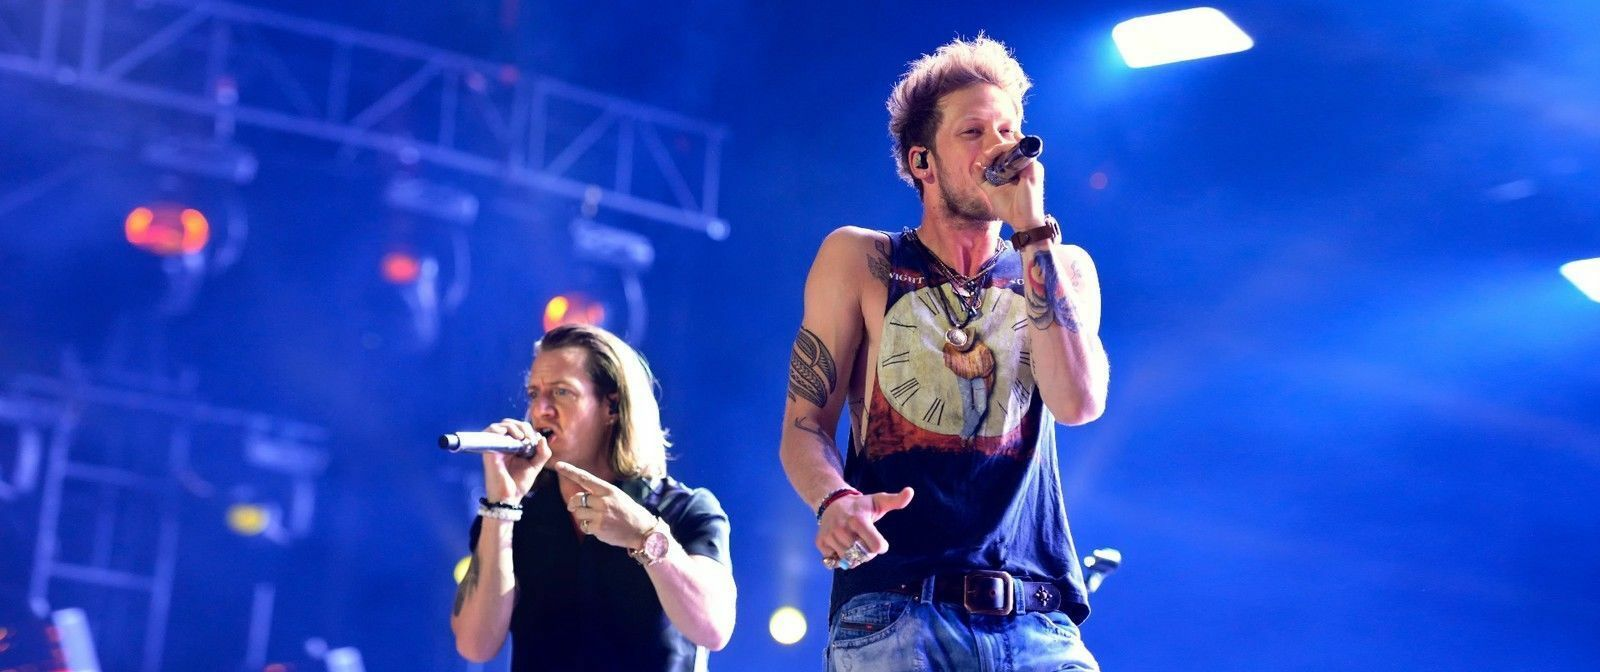 Florida Georgia Line with Backstreet Boys, Nelly and Chris Lane